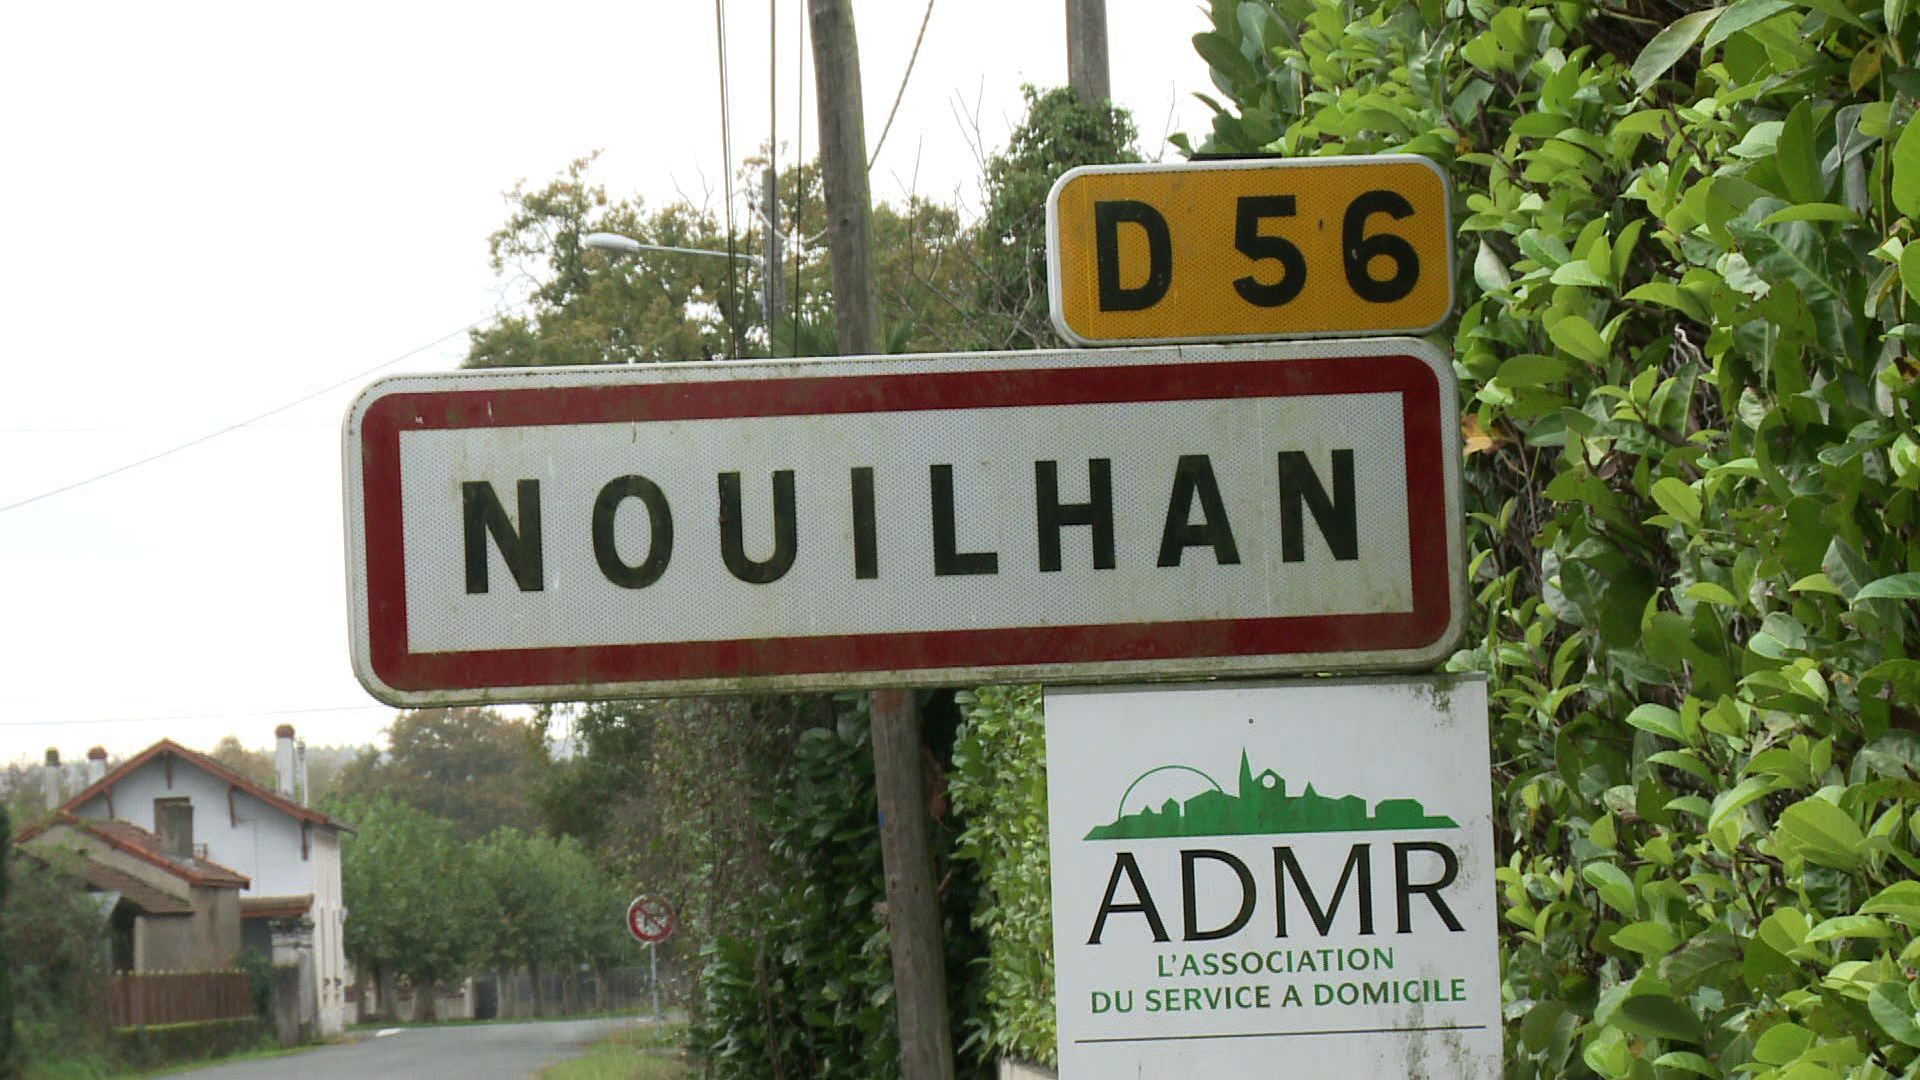 Nouilhan, possession